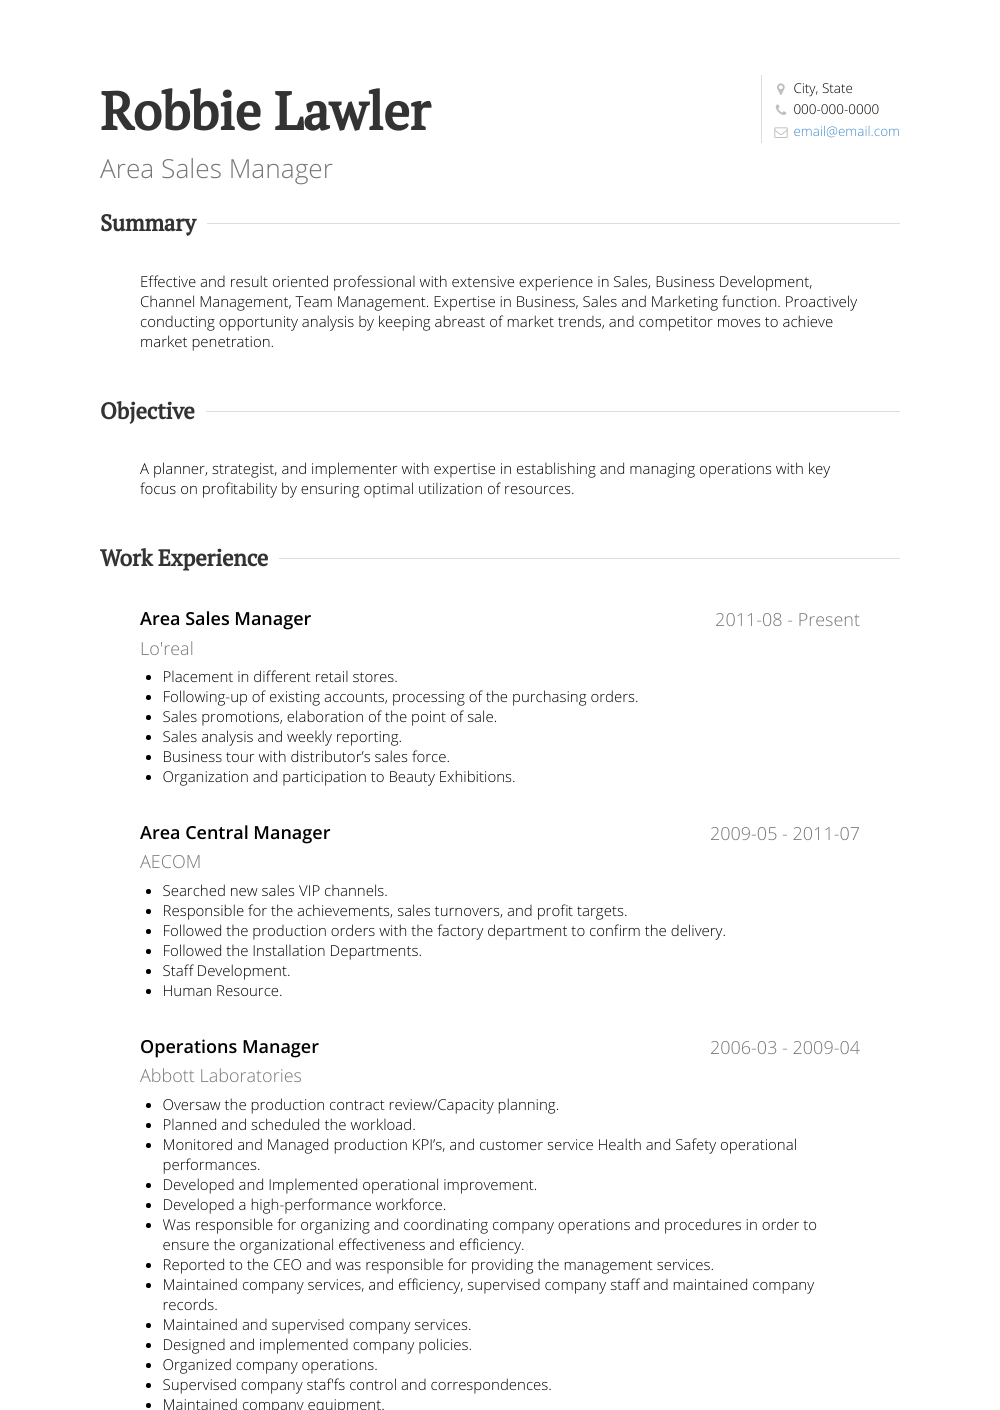 Area Manager - Resume Samples & Templates | VisualCV